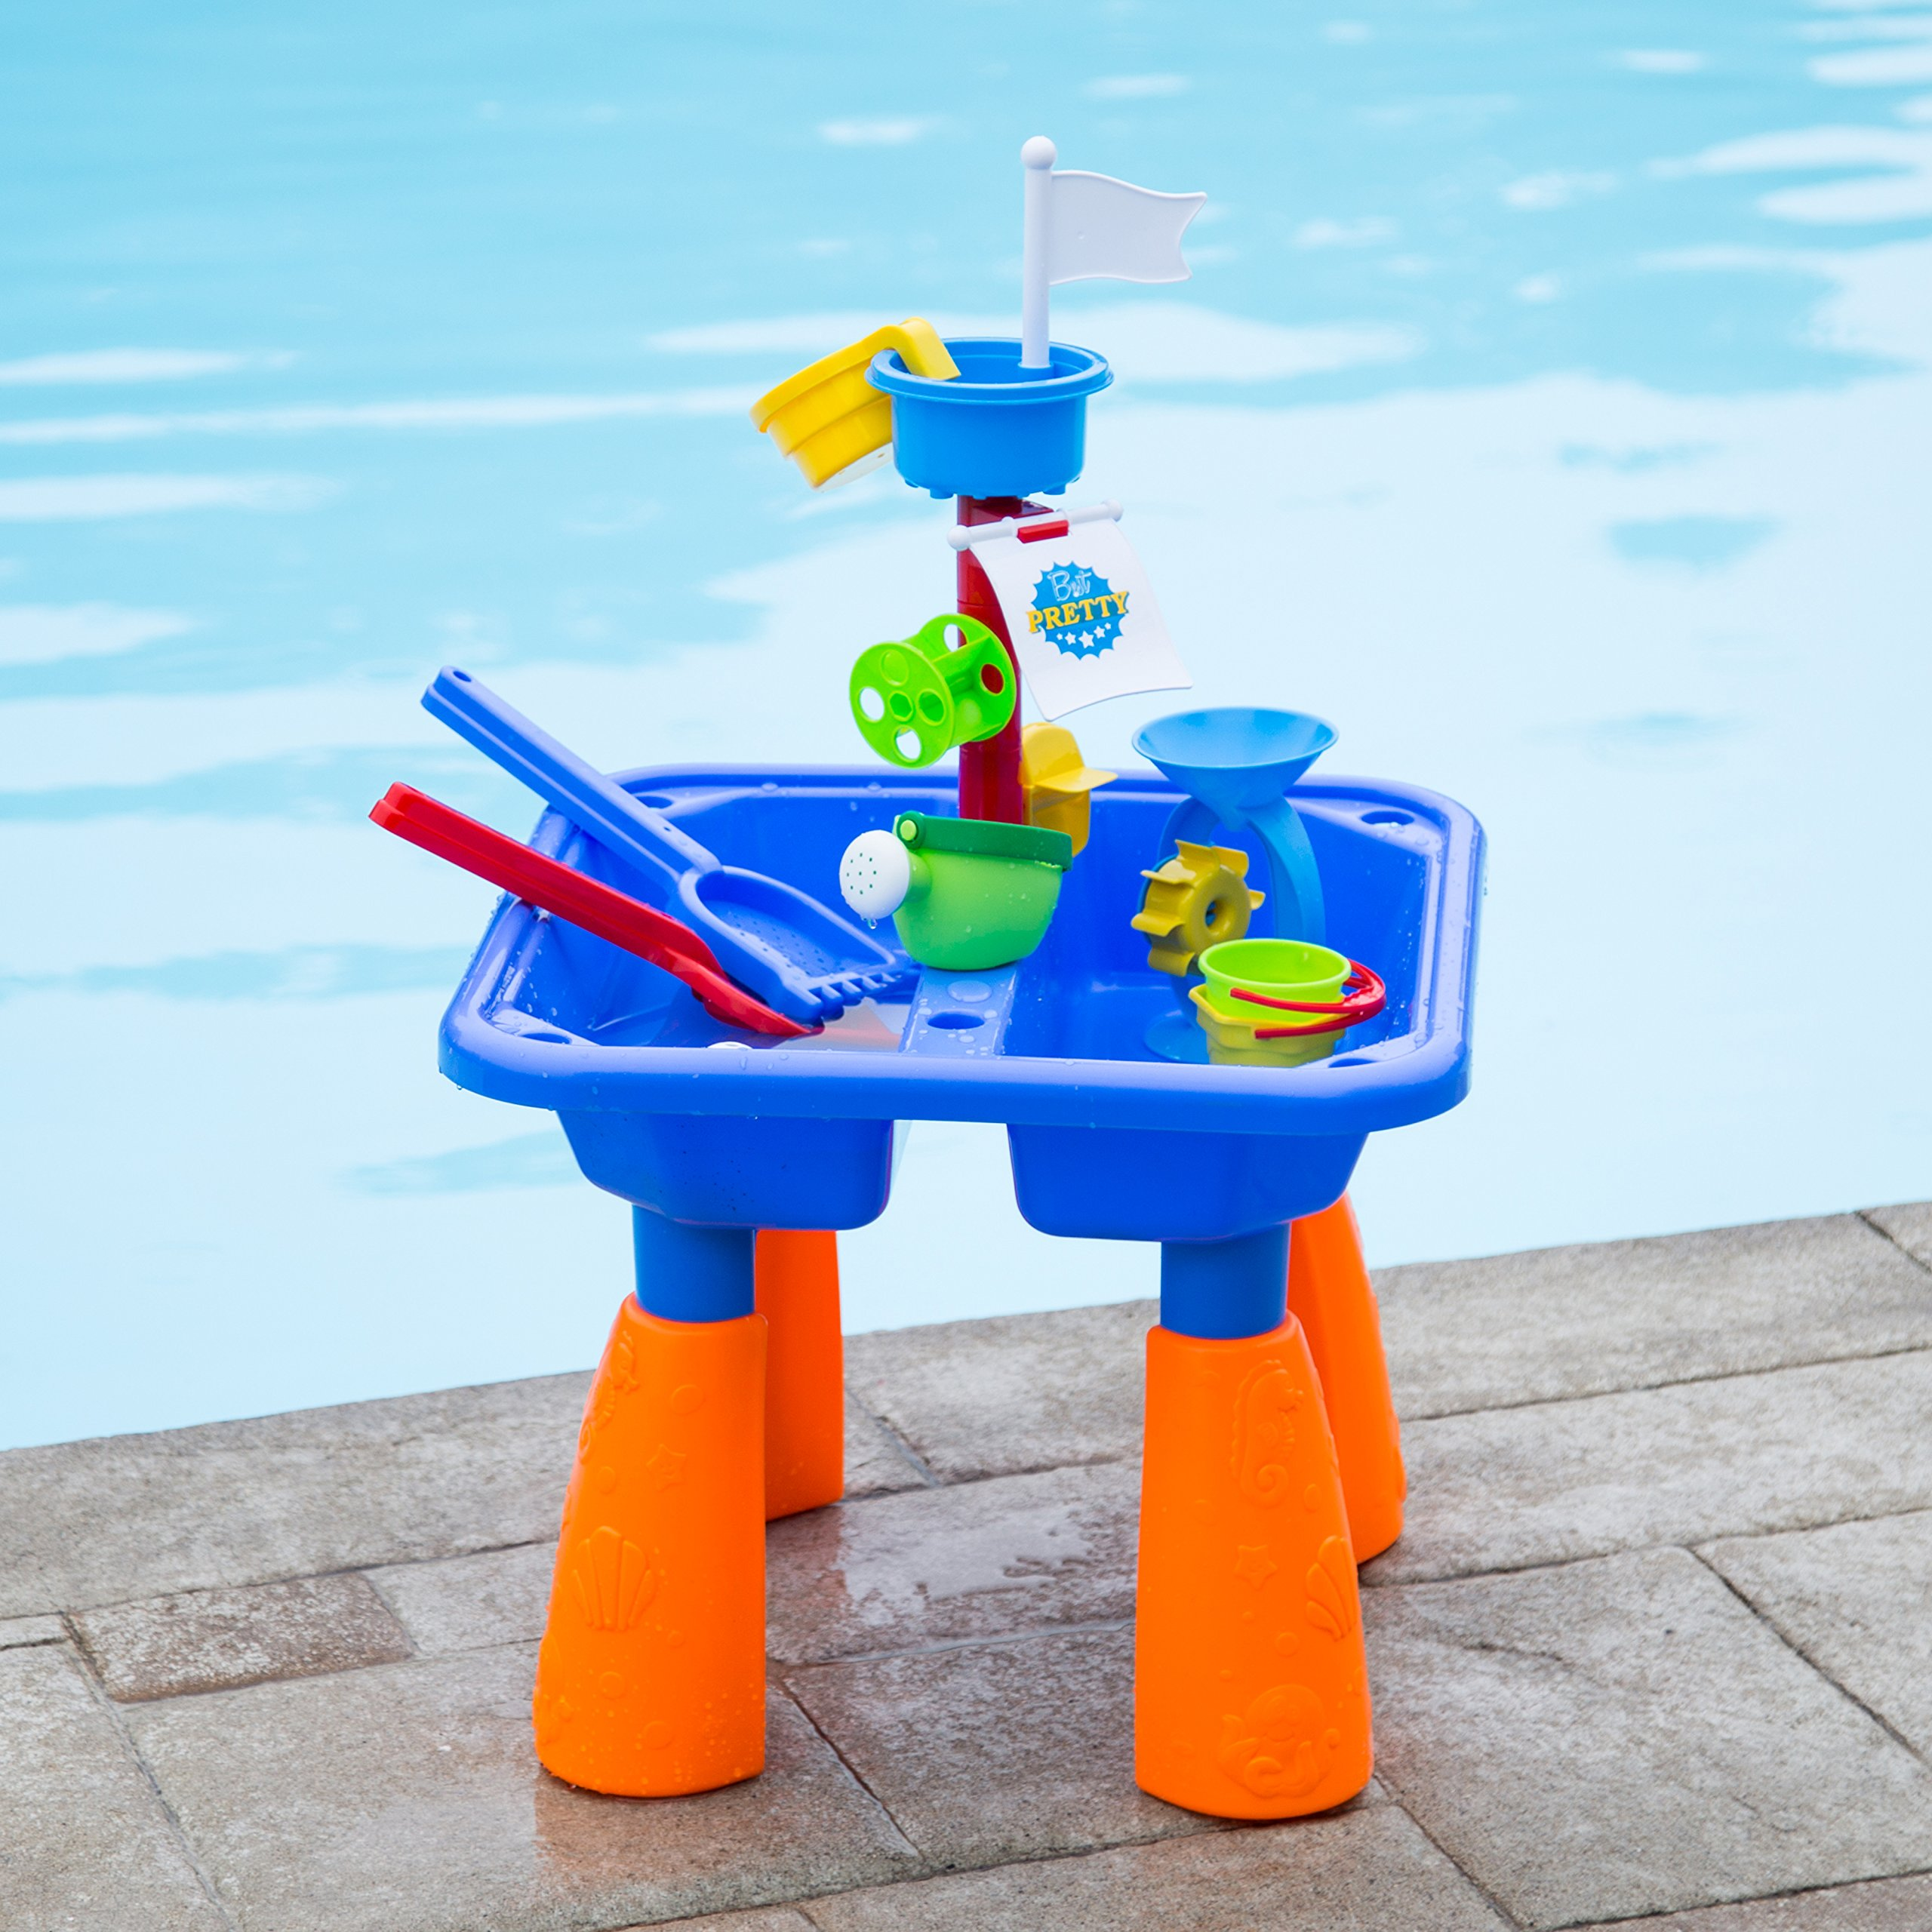 Next Milestones Kids Sand and Water Table Play set, Beach Toys Sandbox Include Sand Bucket, Water Can, Shovel, Sand Rake, Sand Mold and more